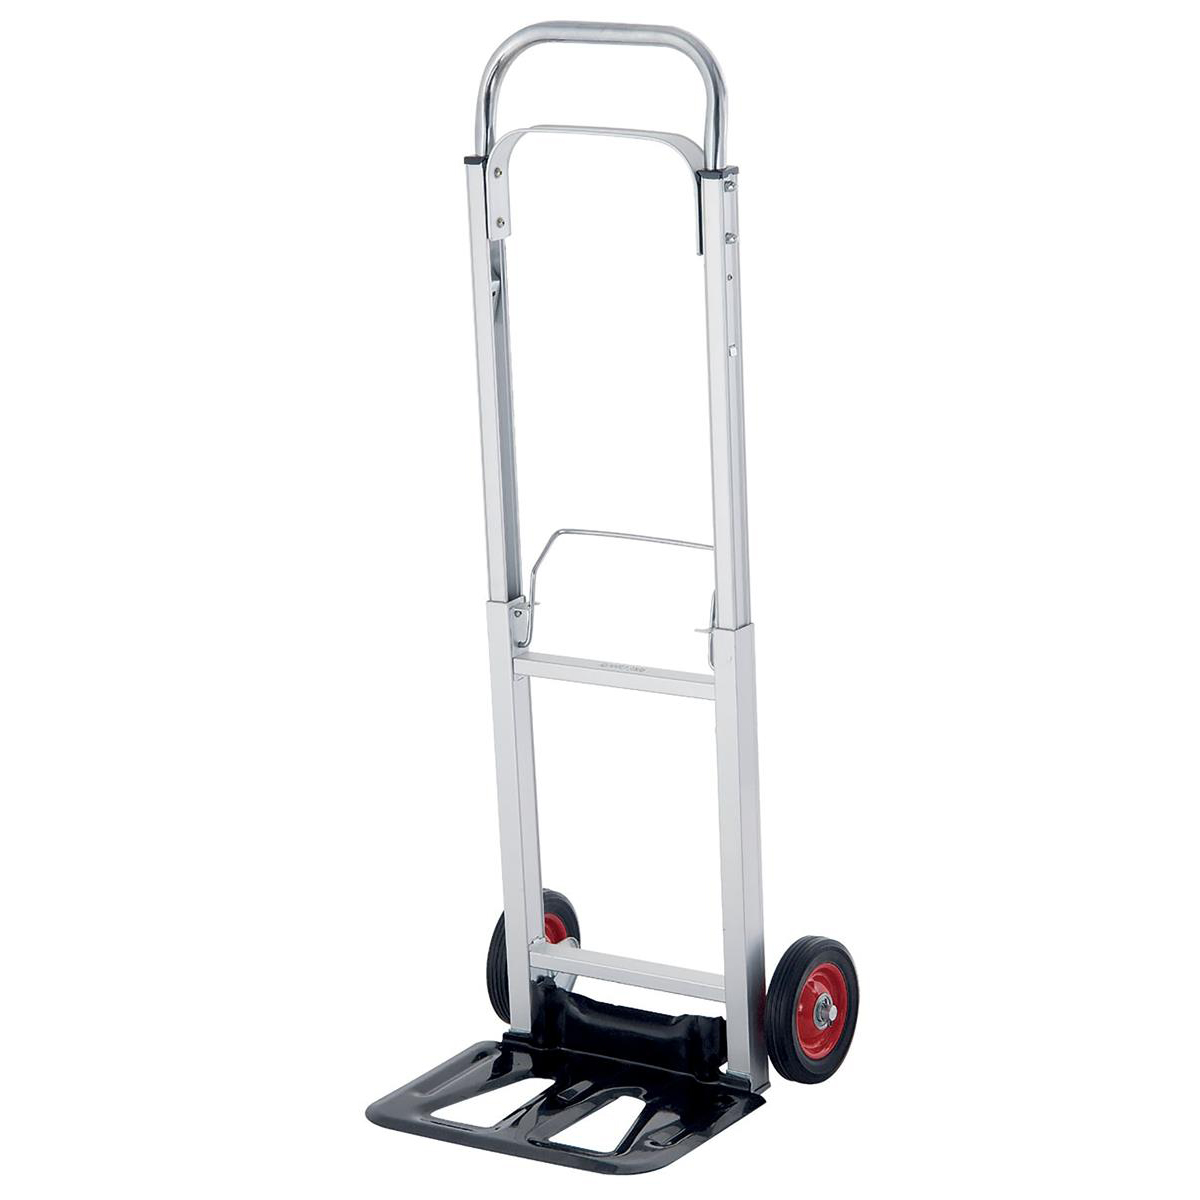 Platform Trucks Hand Trolley Telescopic Handle Lightweight Capacity 90kg Foot Size W355xL235mm